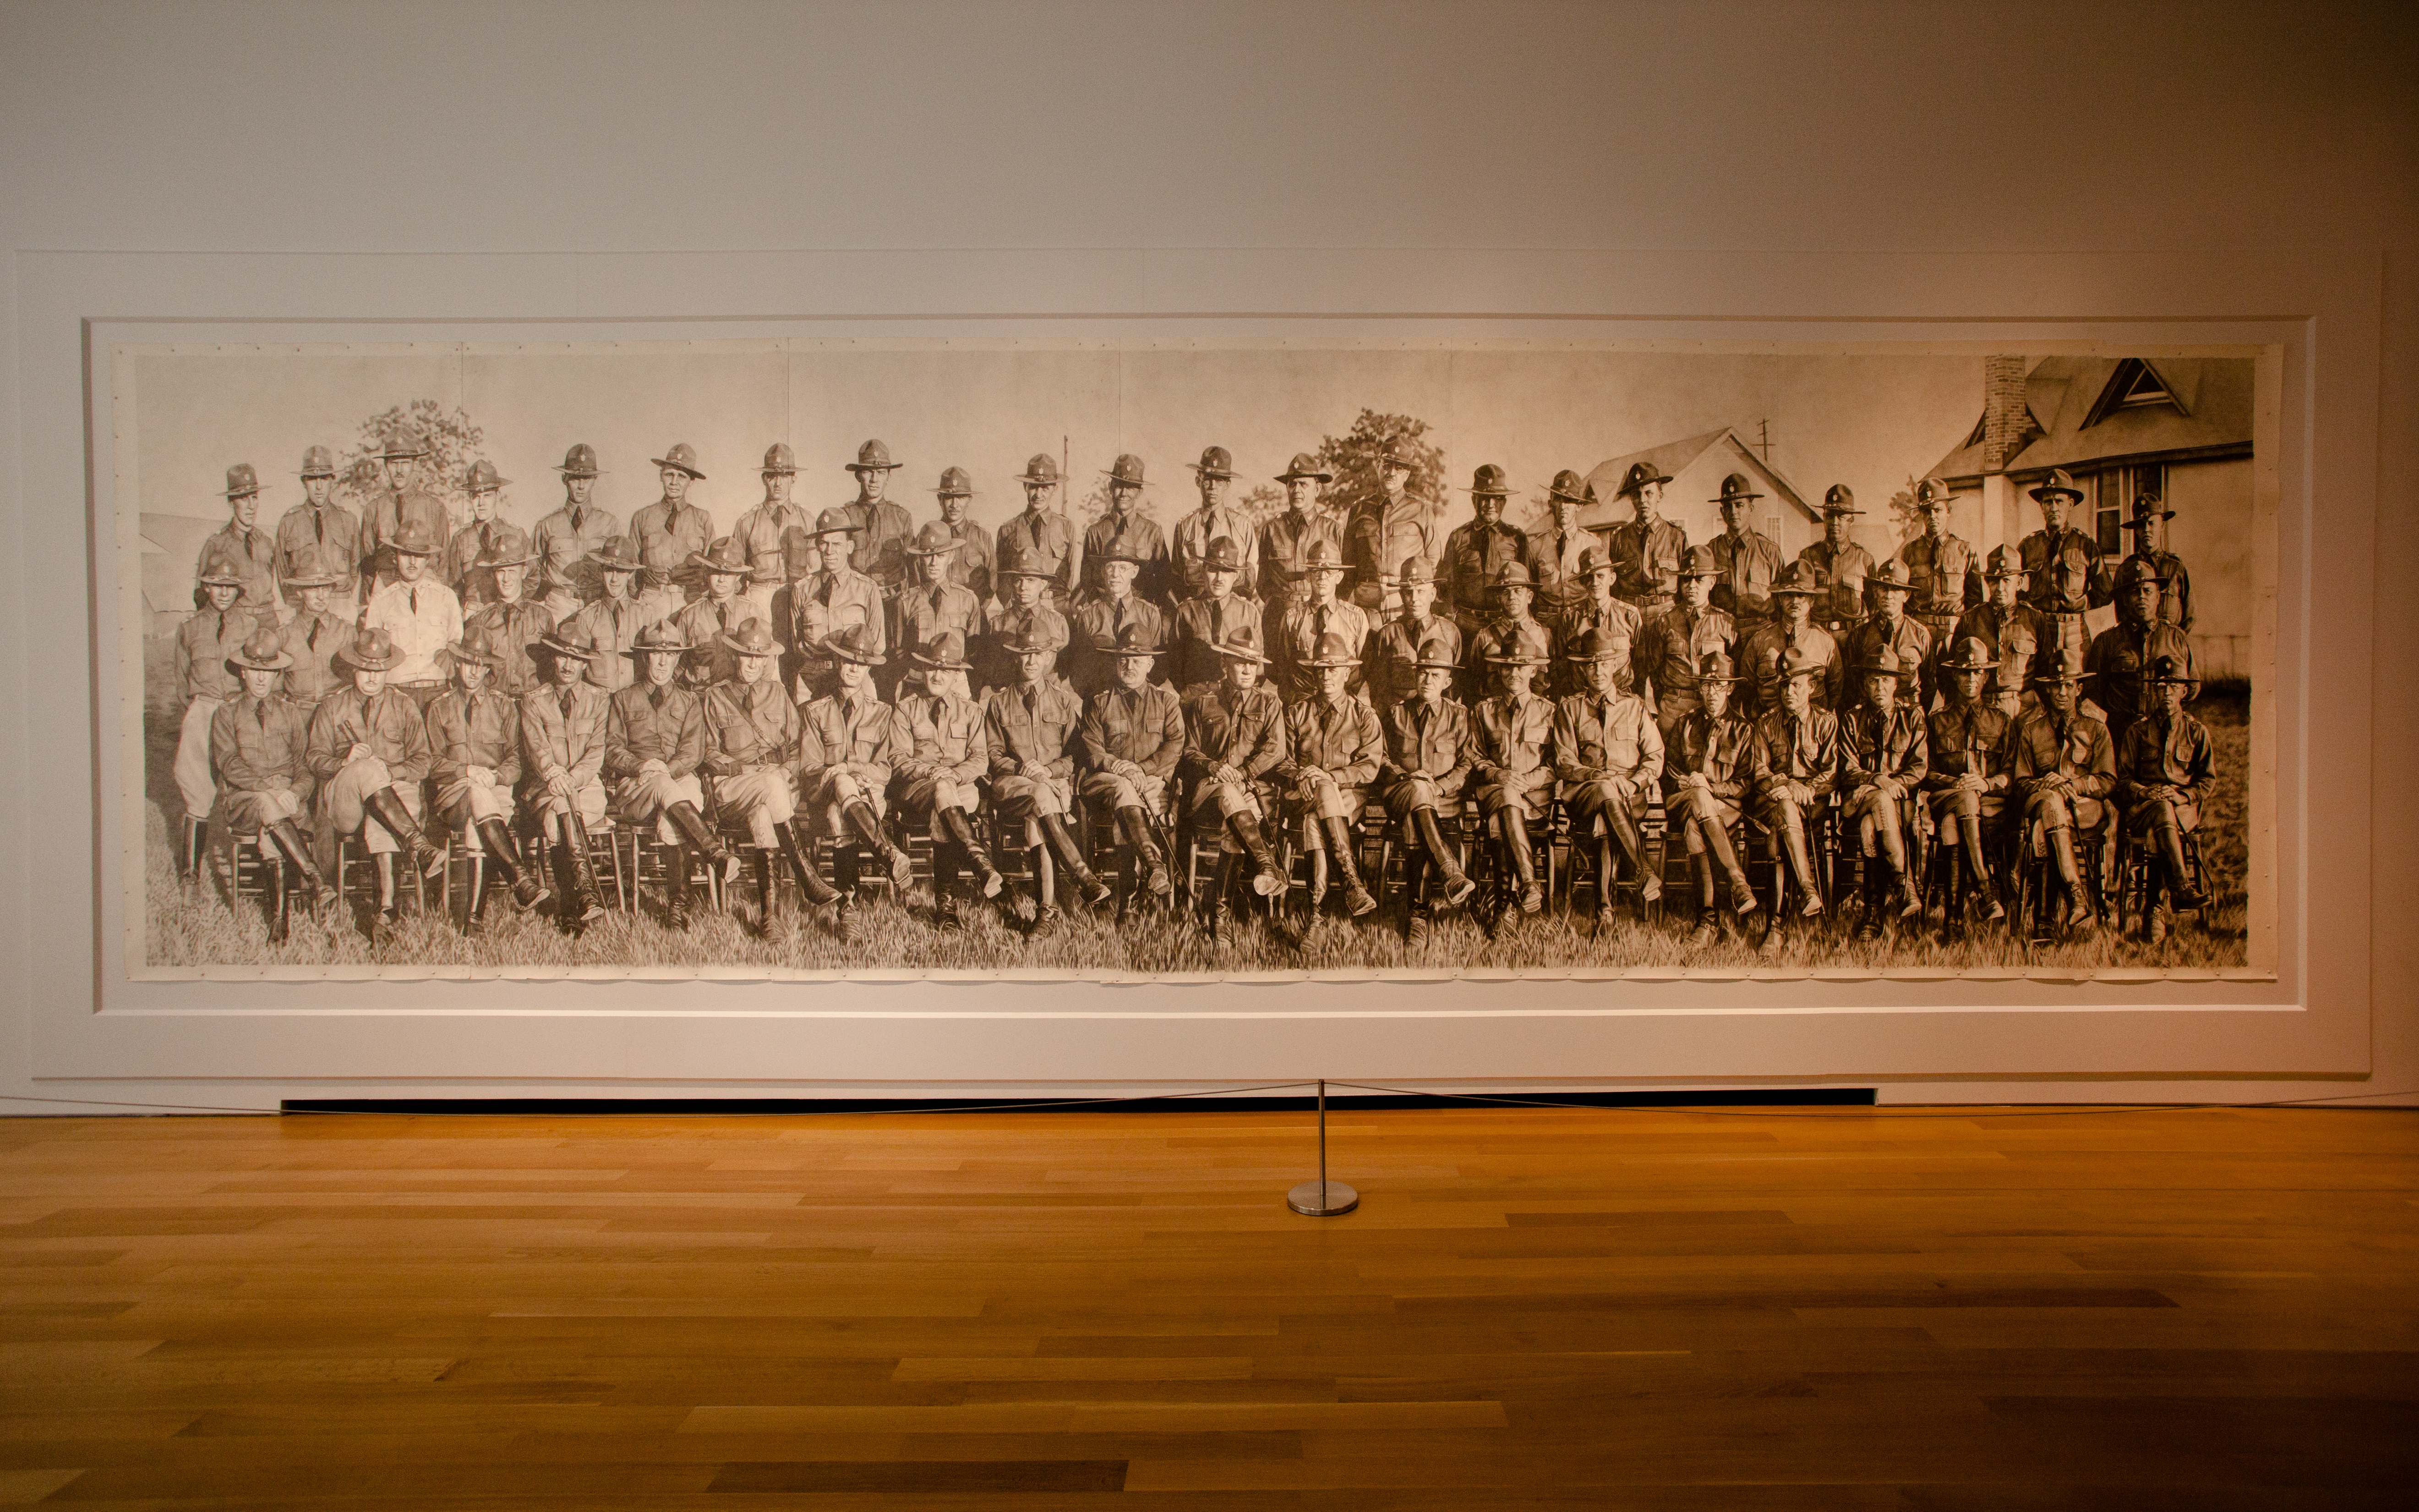 Cavalry, American Officers, 1921